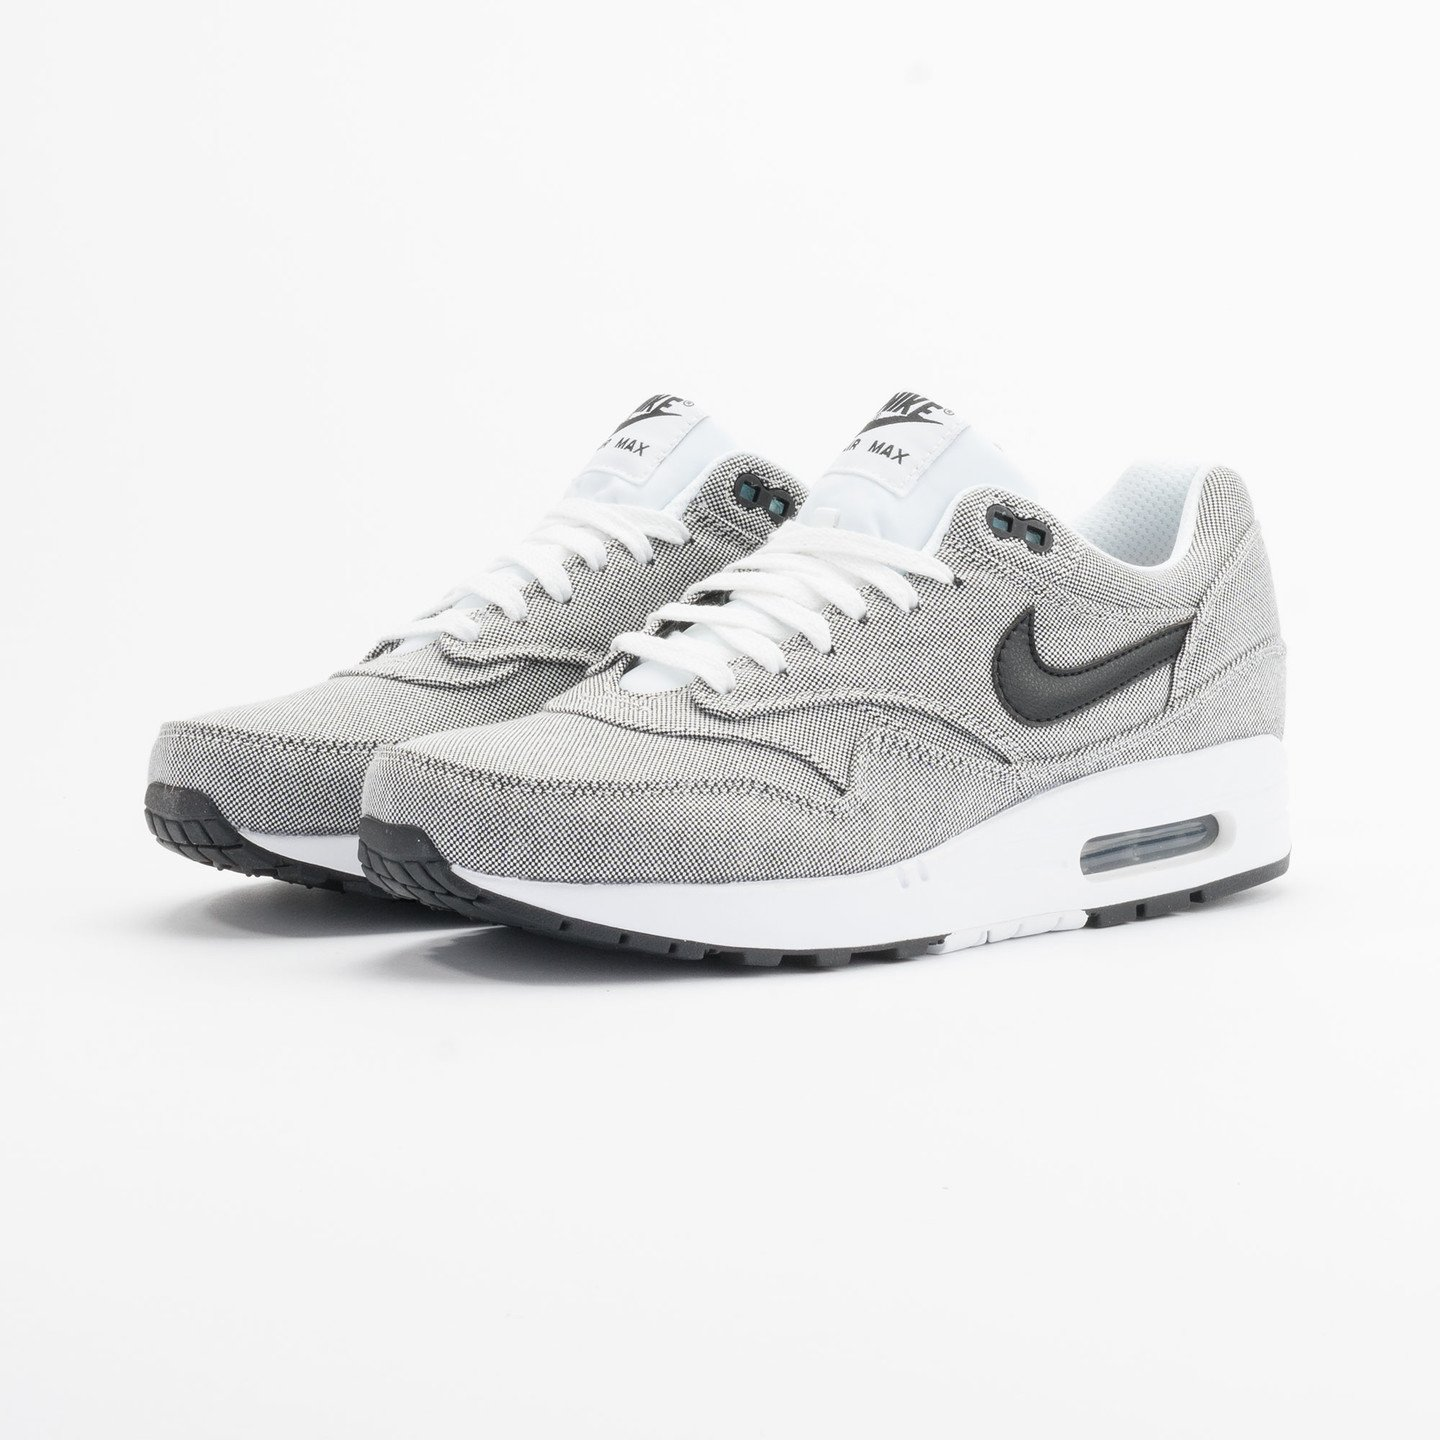 Nike Air Max 1 Prm Picknick Pack Black/White 512033-103-45.5